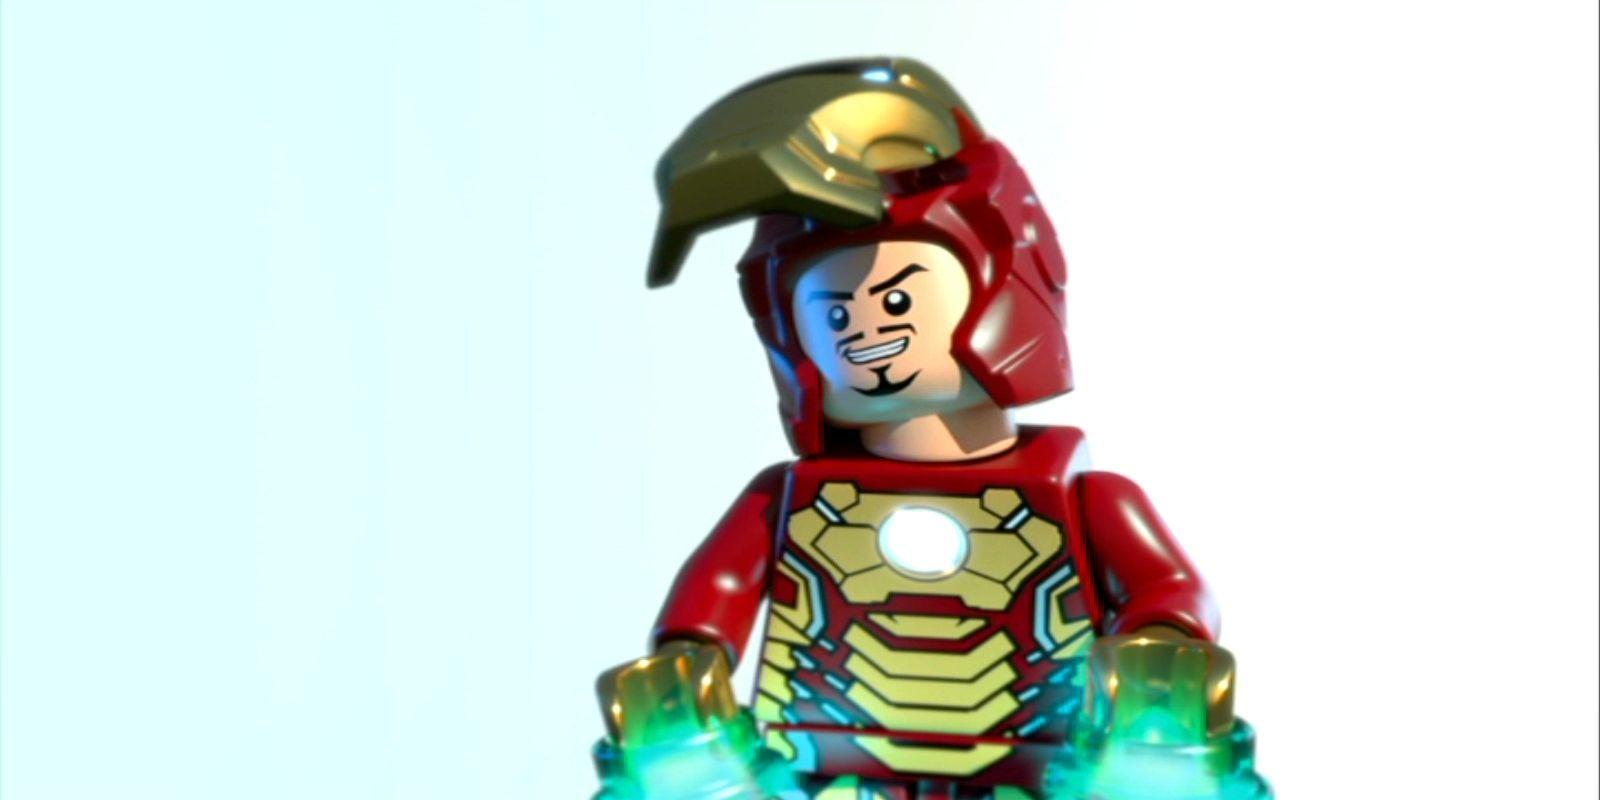 lego marvel wallpaper for desktop - photo #1